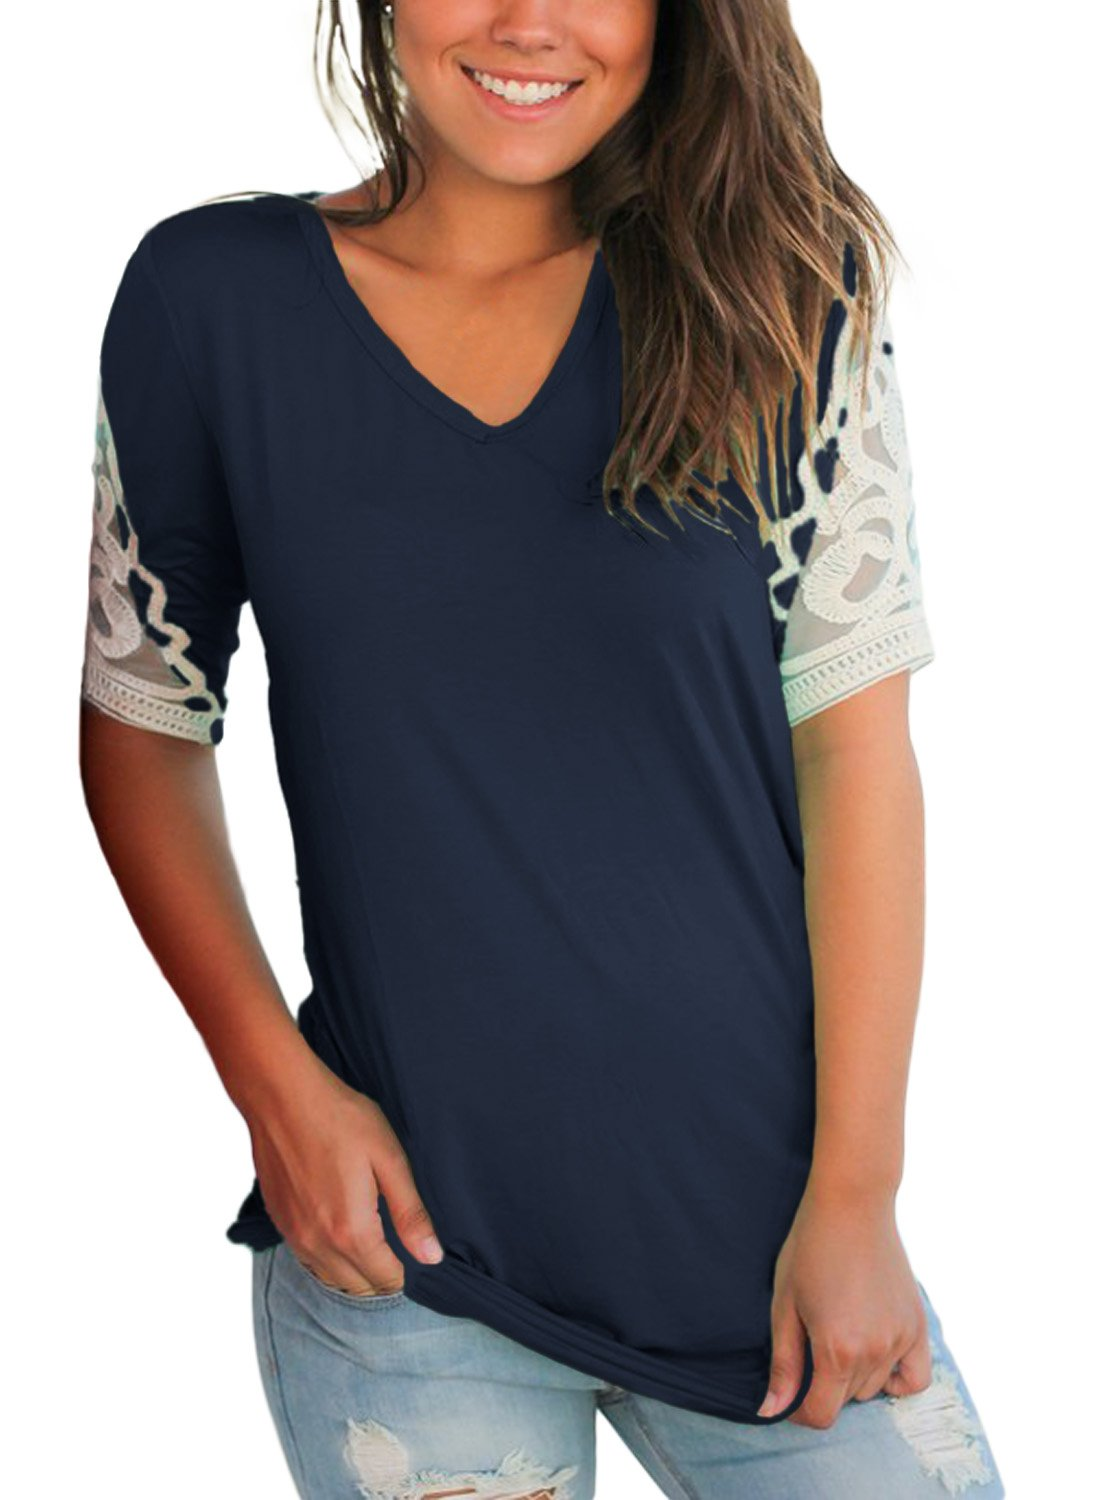 Lovezesent Casual Loose Blouses for Women Short Sleeve Summer V Neck Formal Office Tops Ruched T Shirts for Juniors Navy Medium